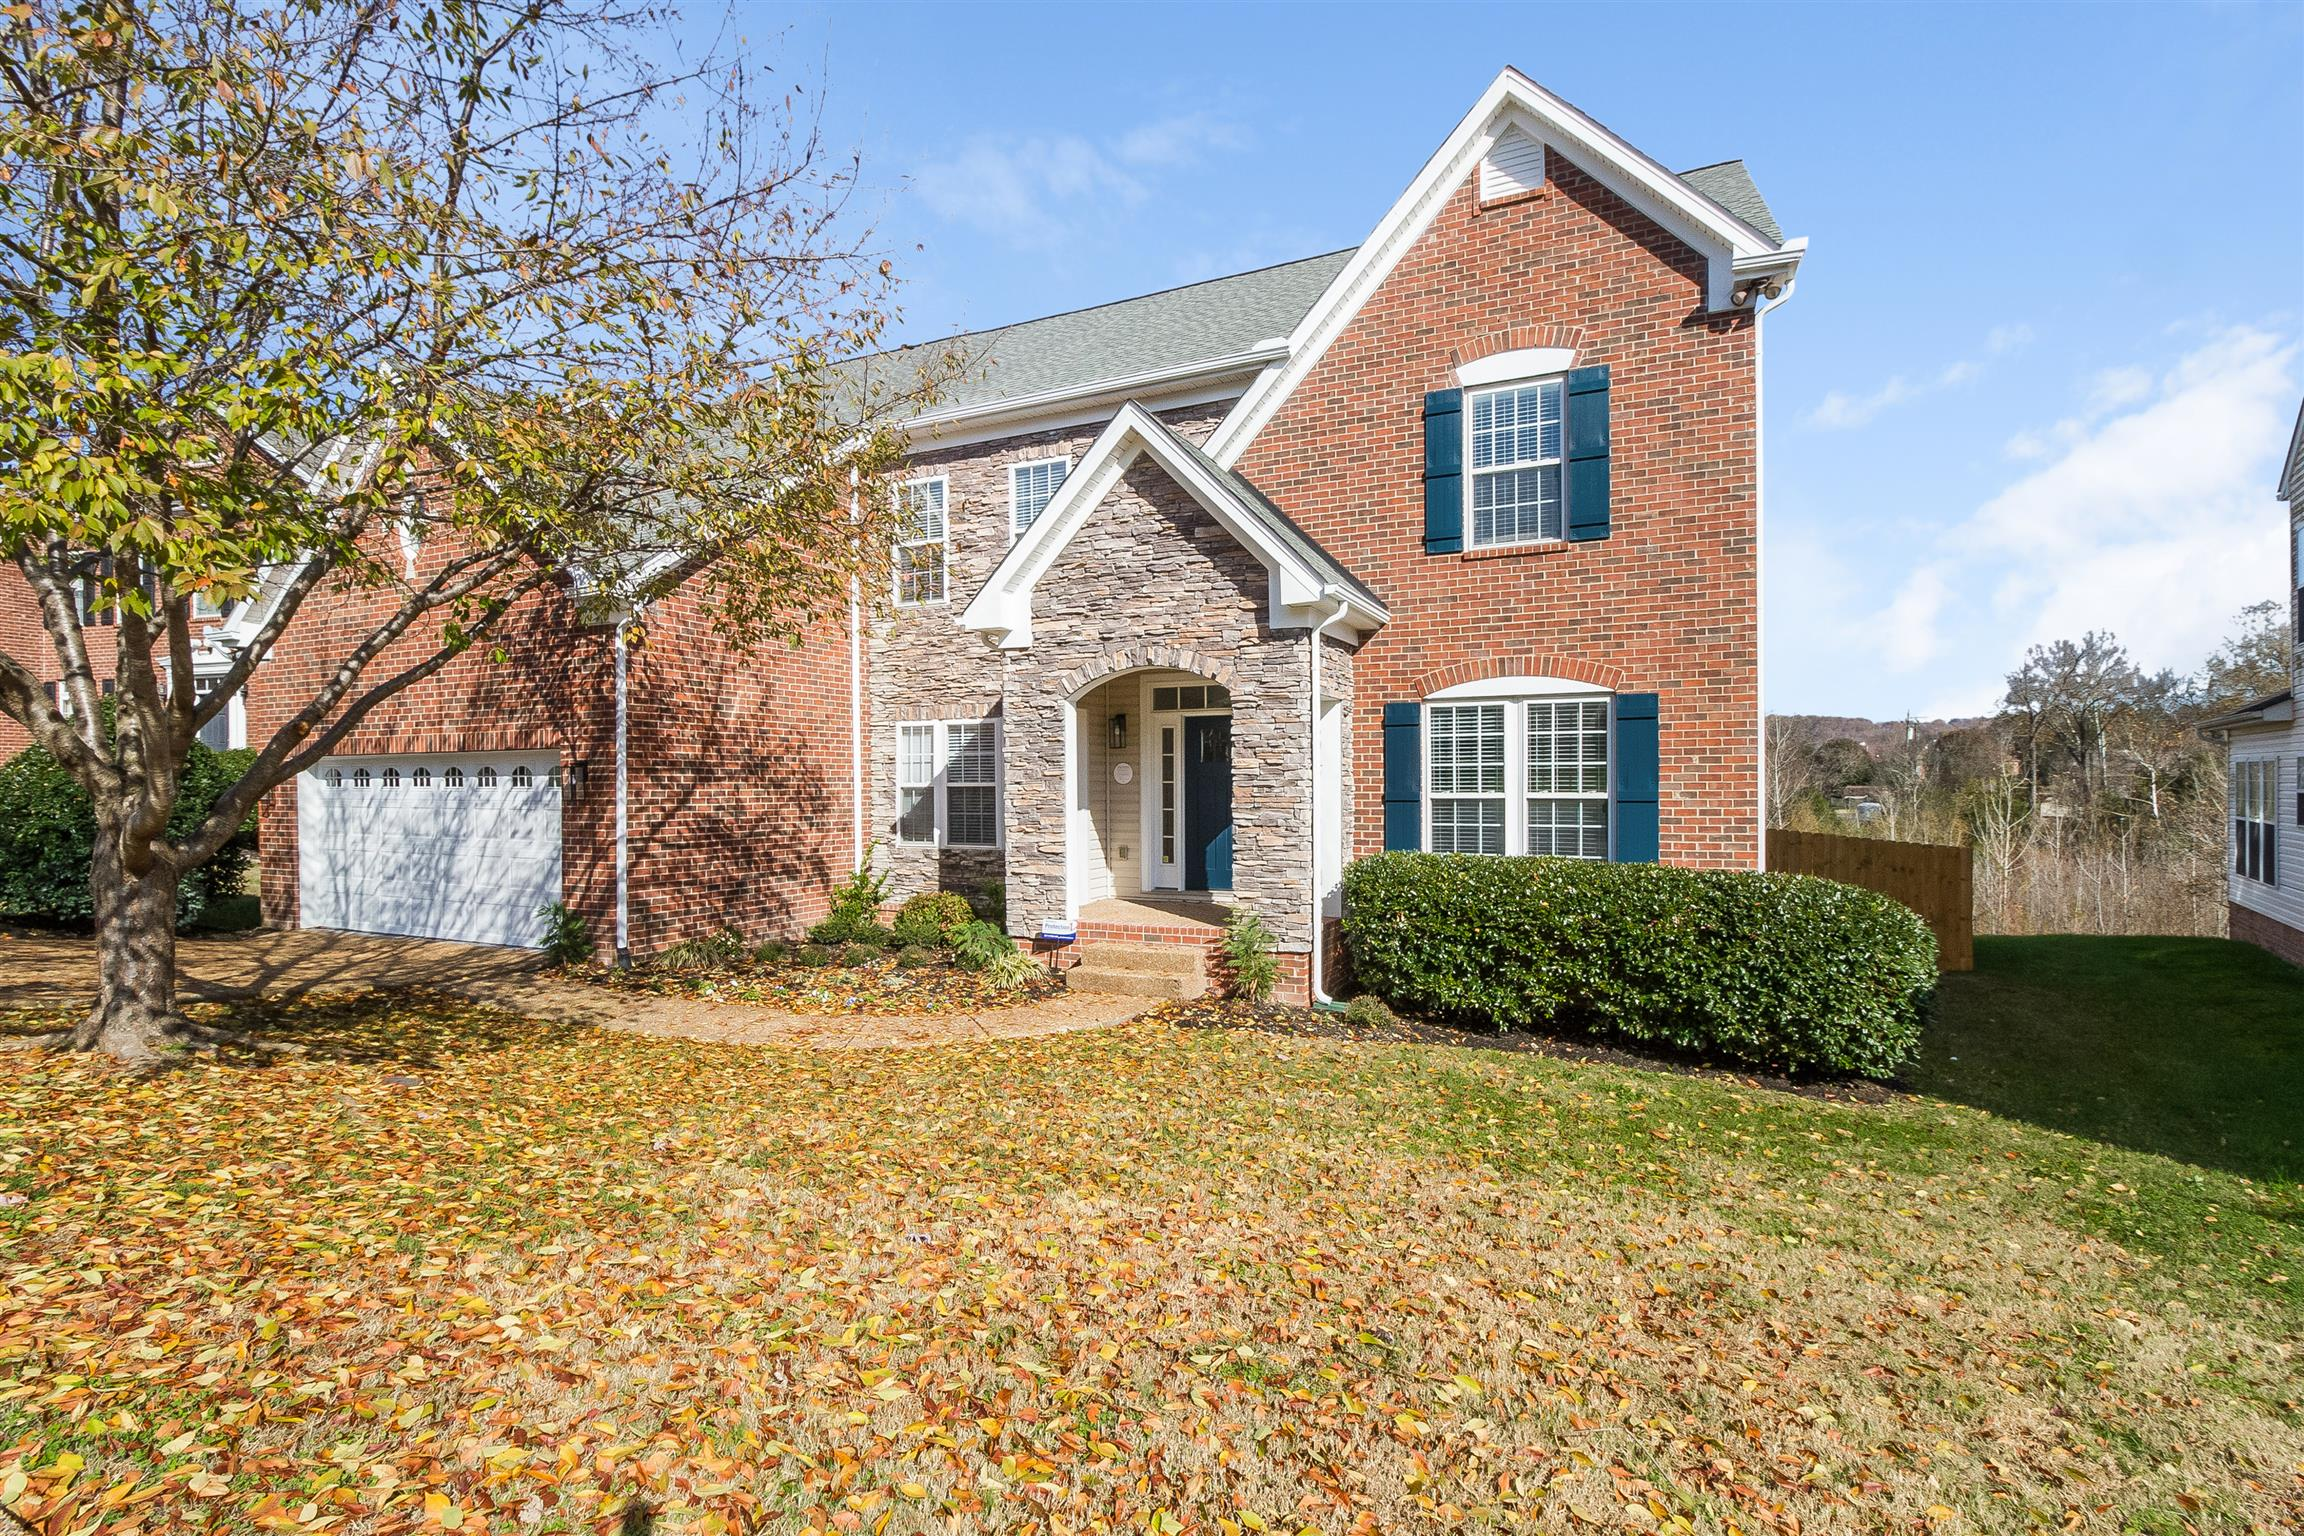 8488 Beautiful Valley Dr, Bellevue, Tennessee